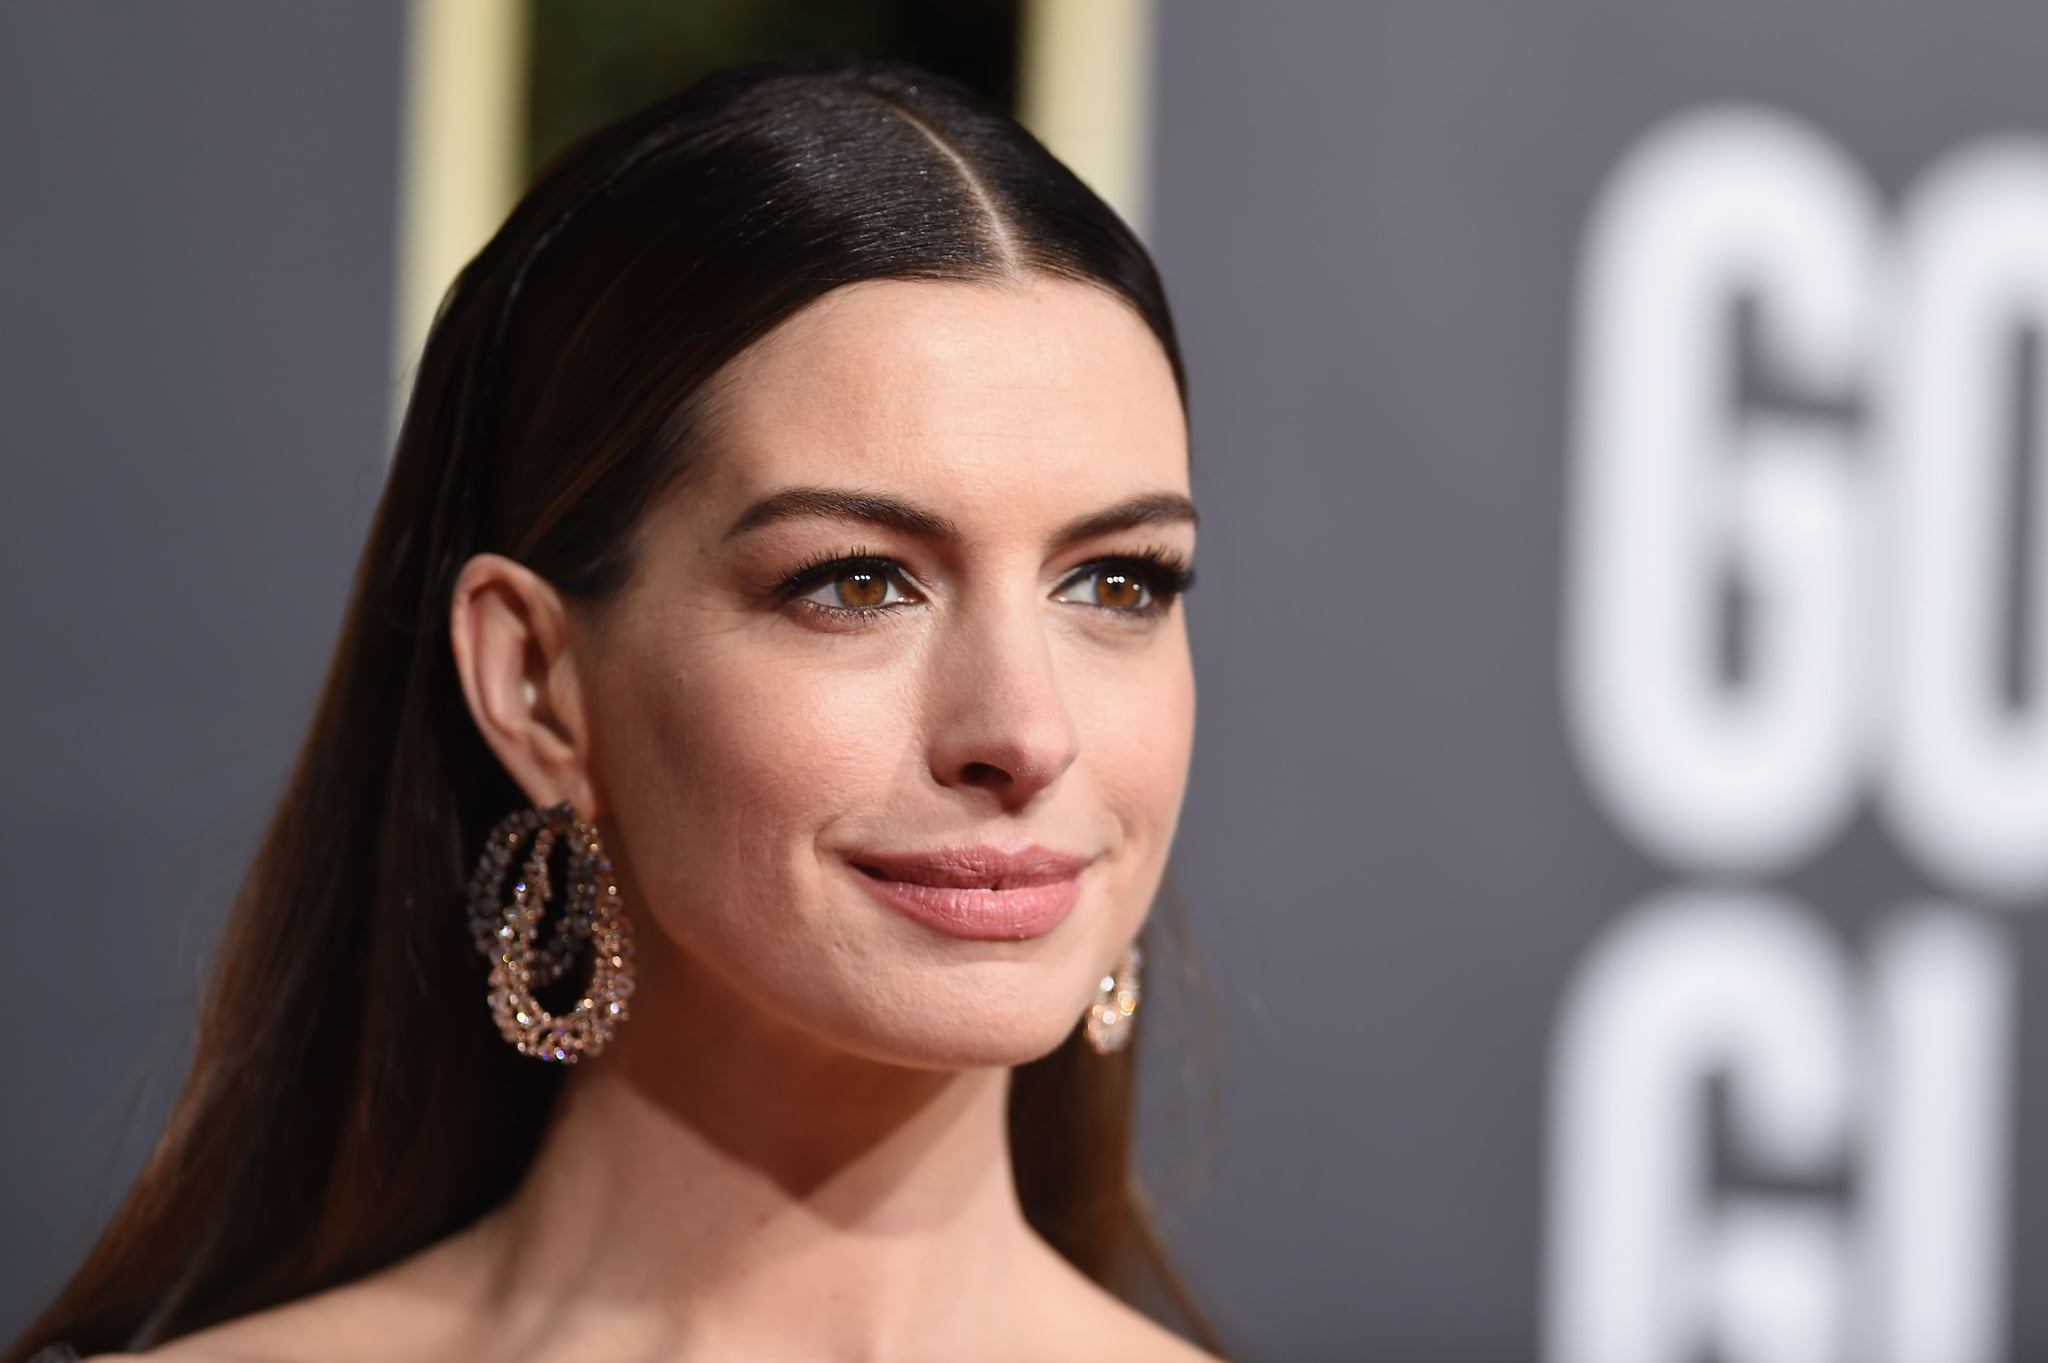 US actress Anne Hathaway arrives for the 76th annual Golden Globe Awards on January 6, 2019, at the Beverly Hilton hotel in Beverly Hills, California. (Photo by VALERIE MACON / AFP)        (Photo credit should read VALERIE MACON/AFP/Getty Images)